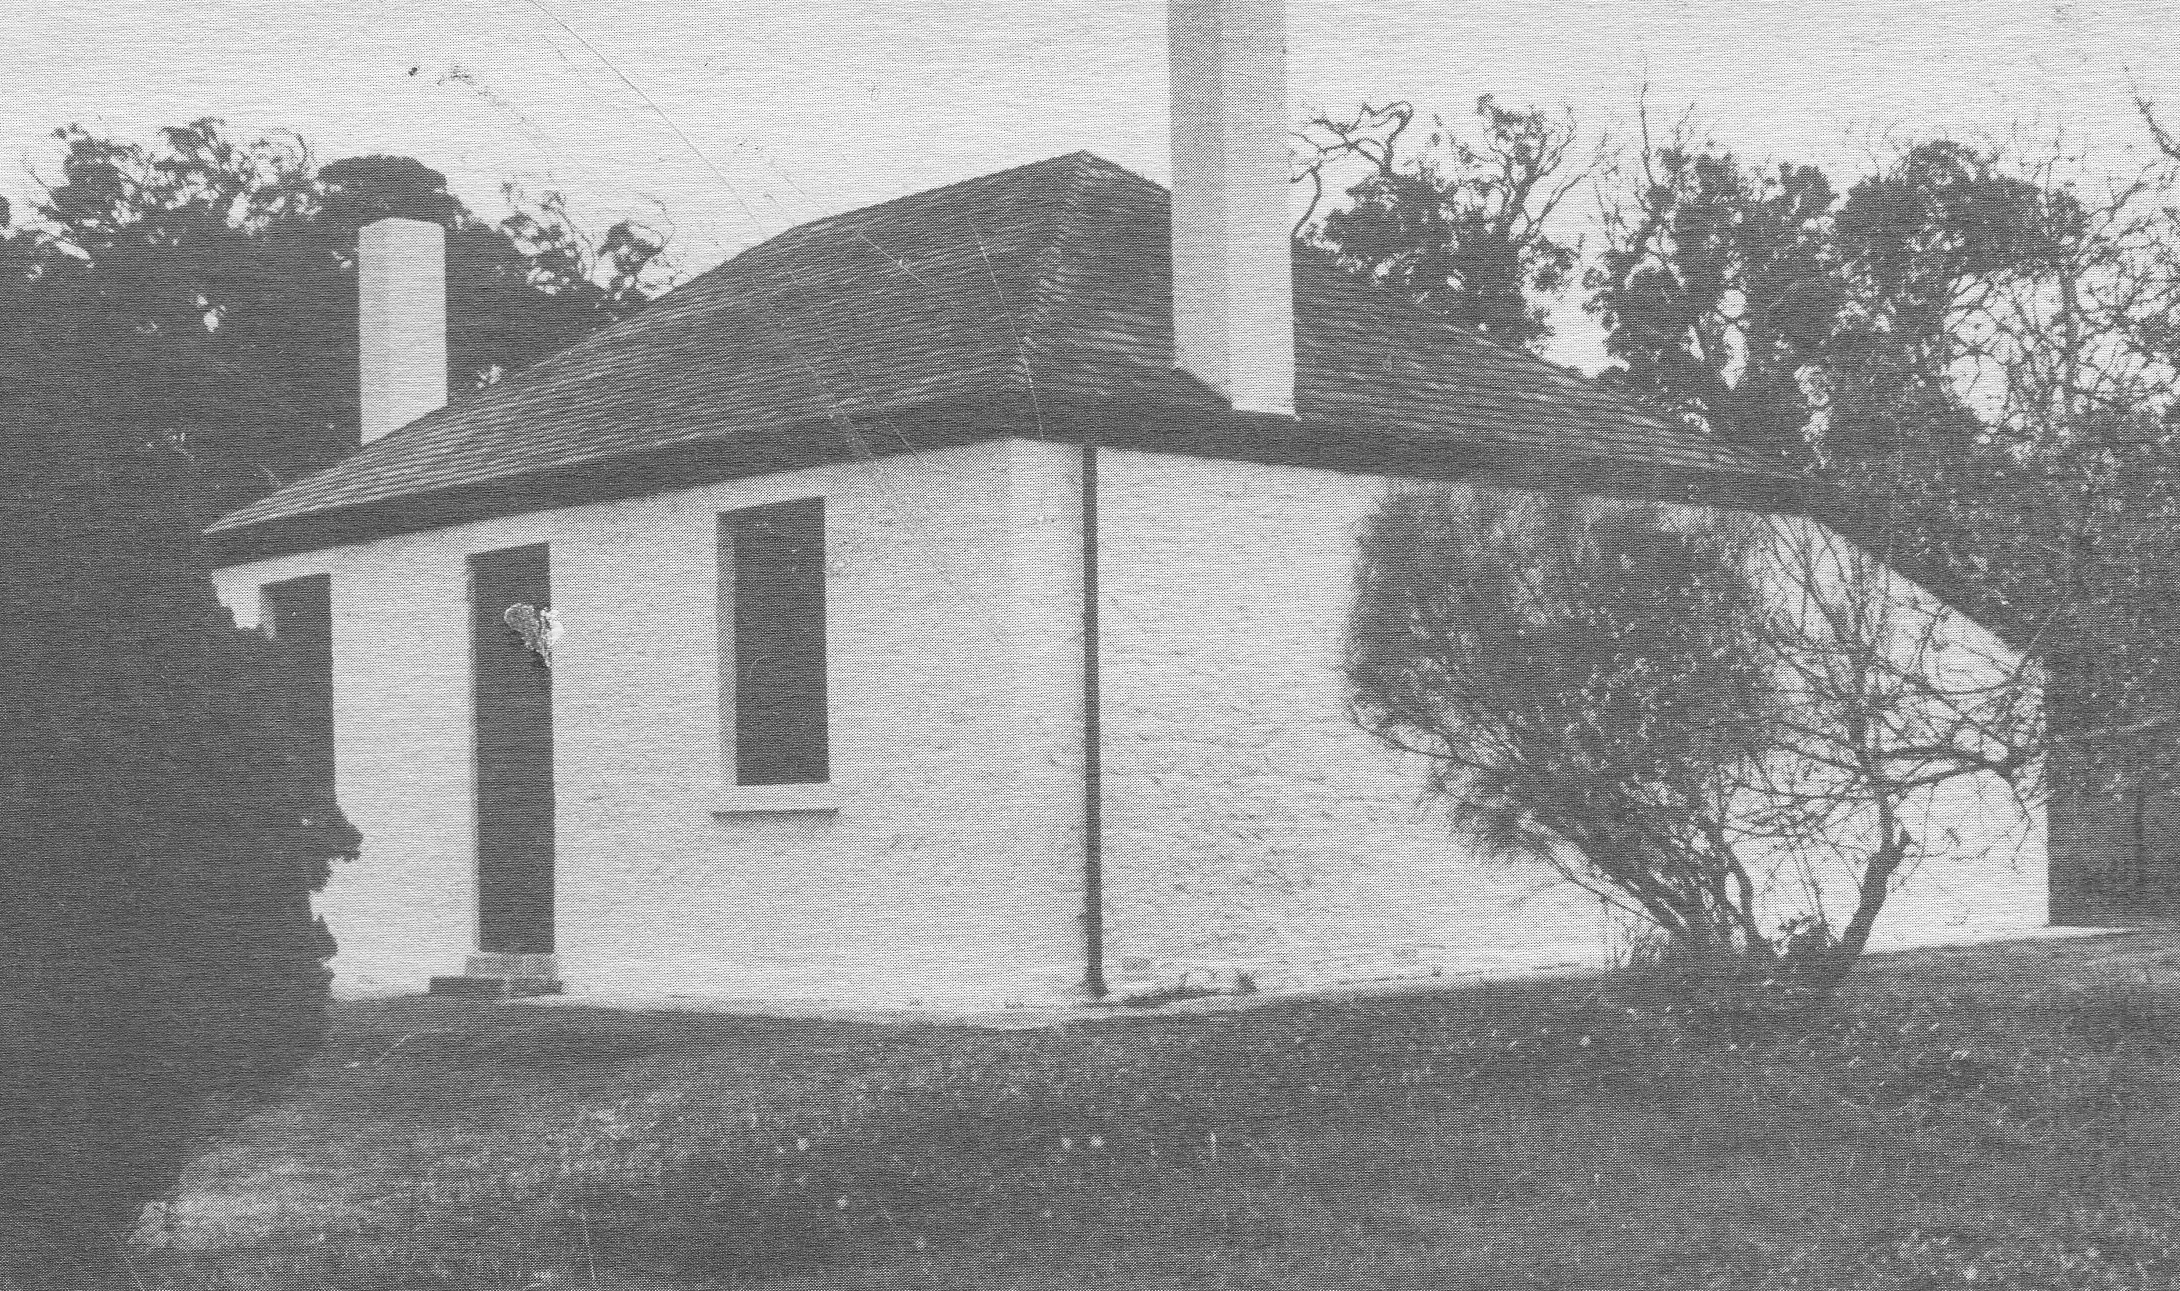 89 years Since First Pilgrimage to Dingley Dell Cottage